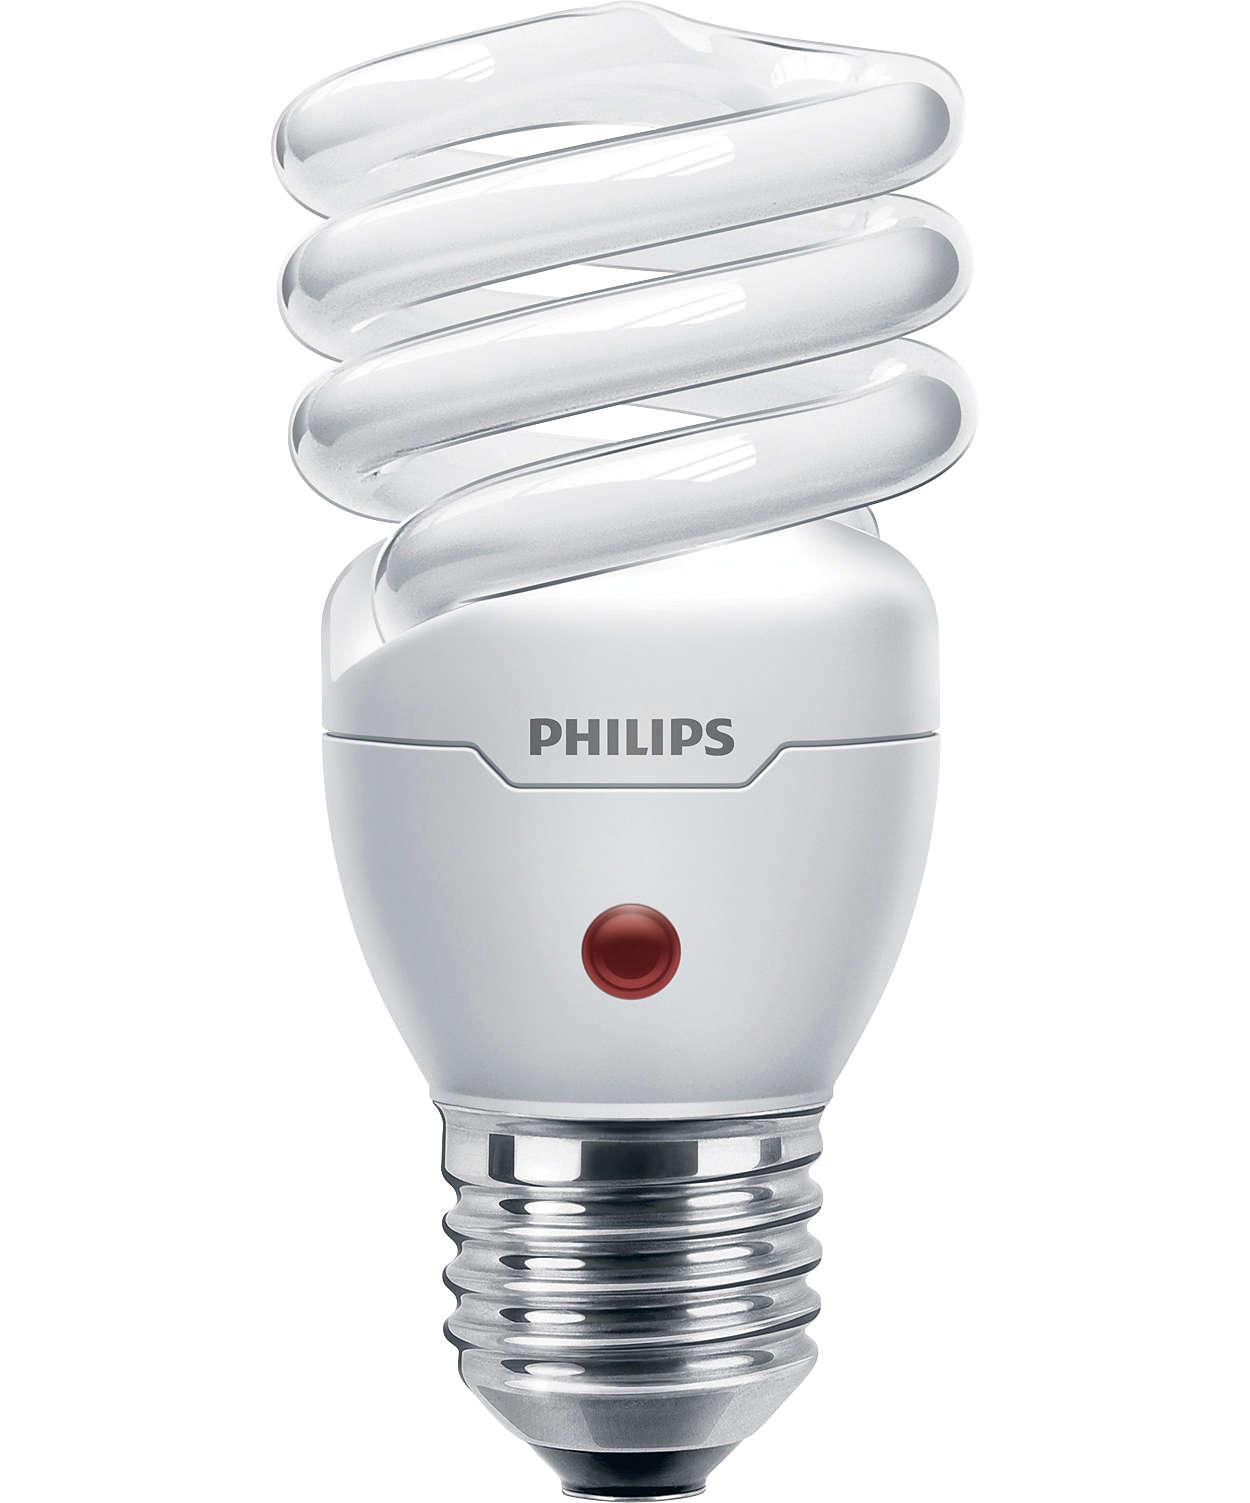 Sensored Spiral shaped lamp with high performance bright light, bringing the beauty of light outside